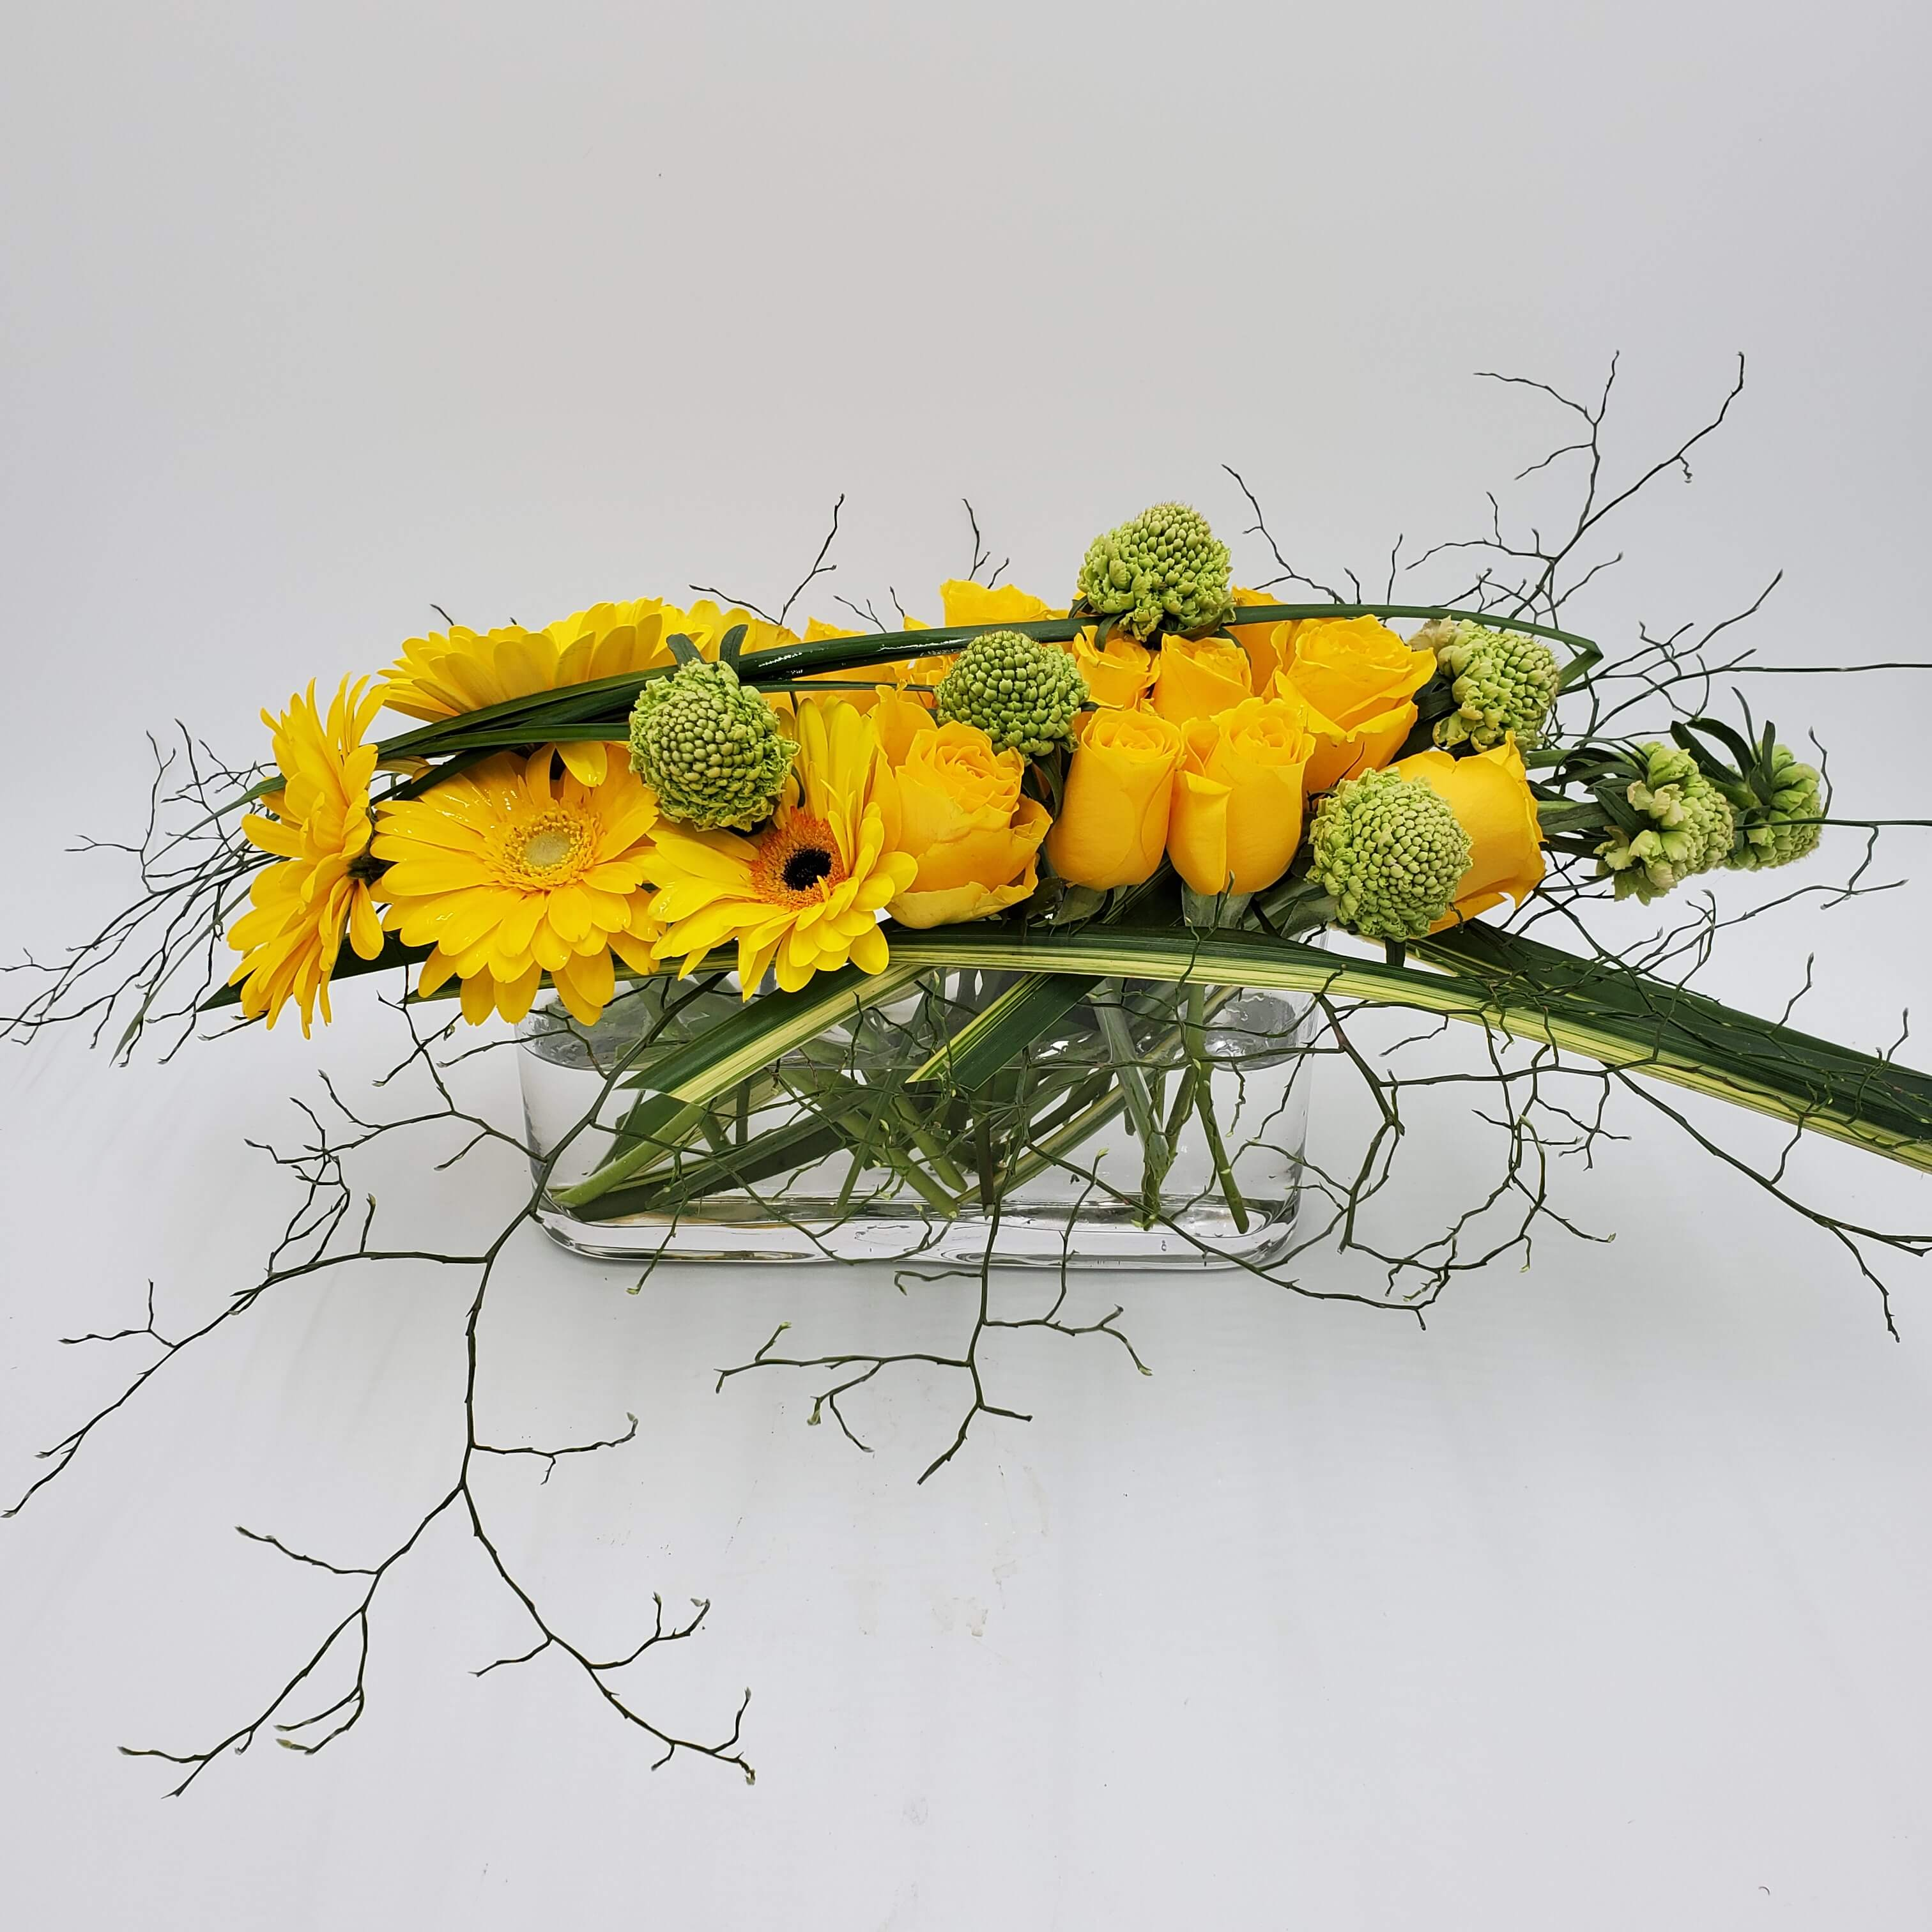 Artistic yellow floral design